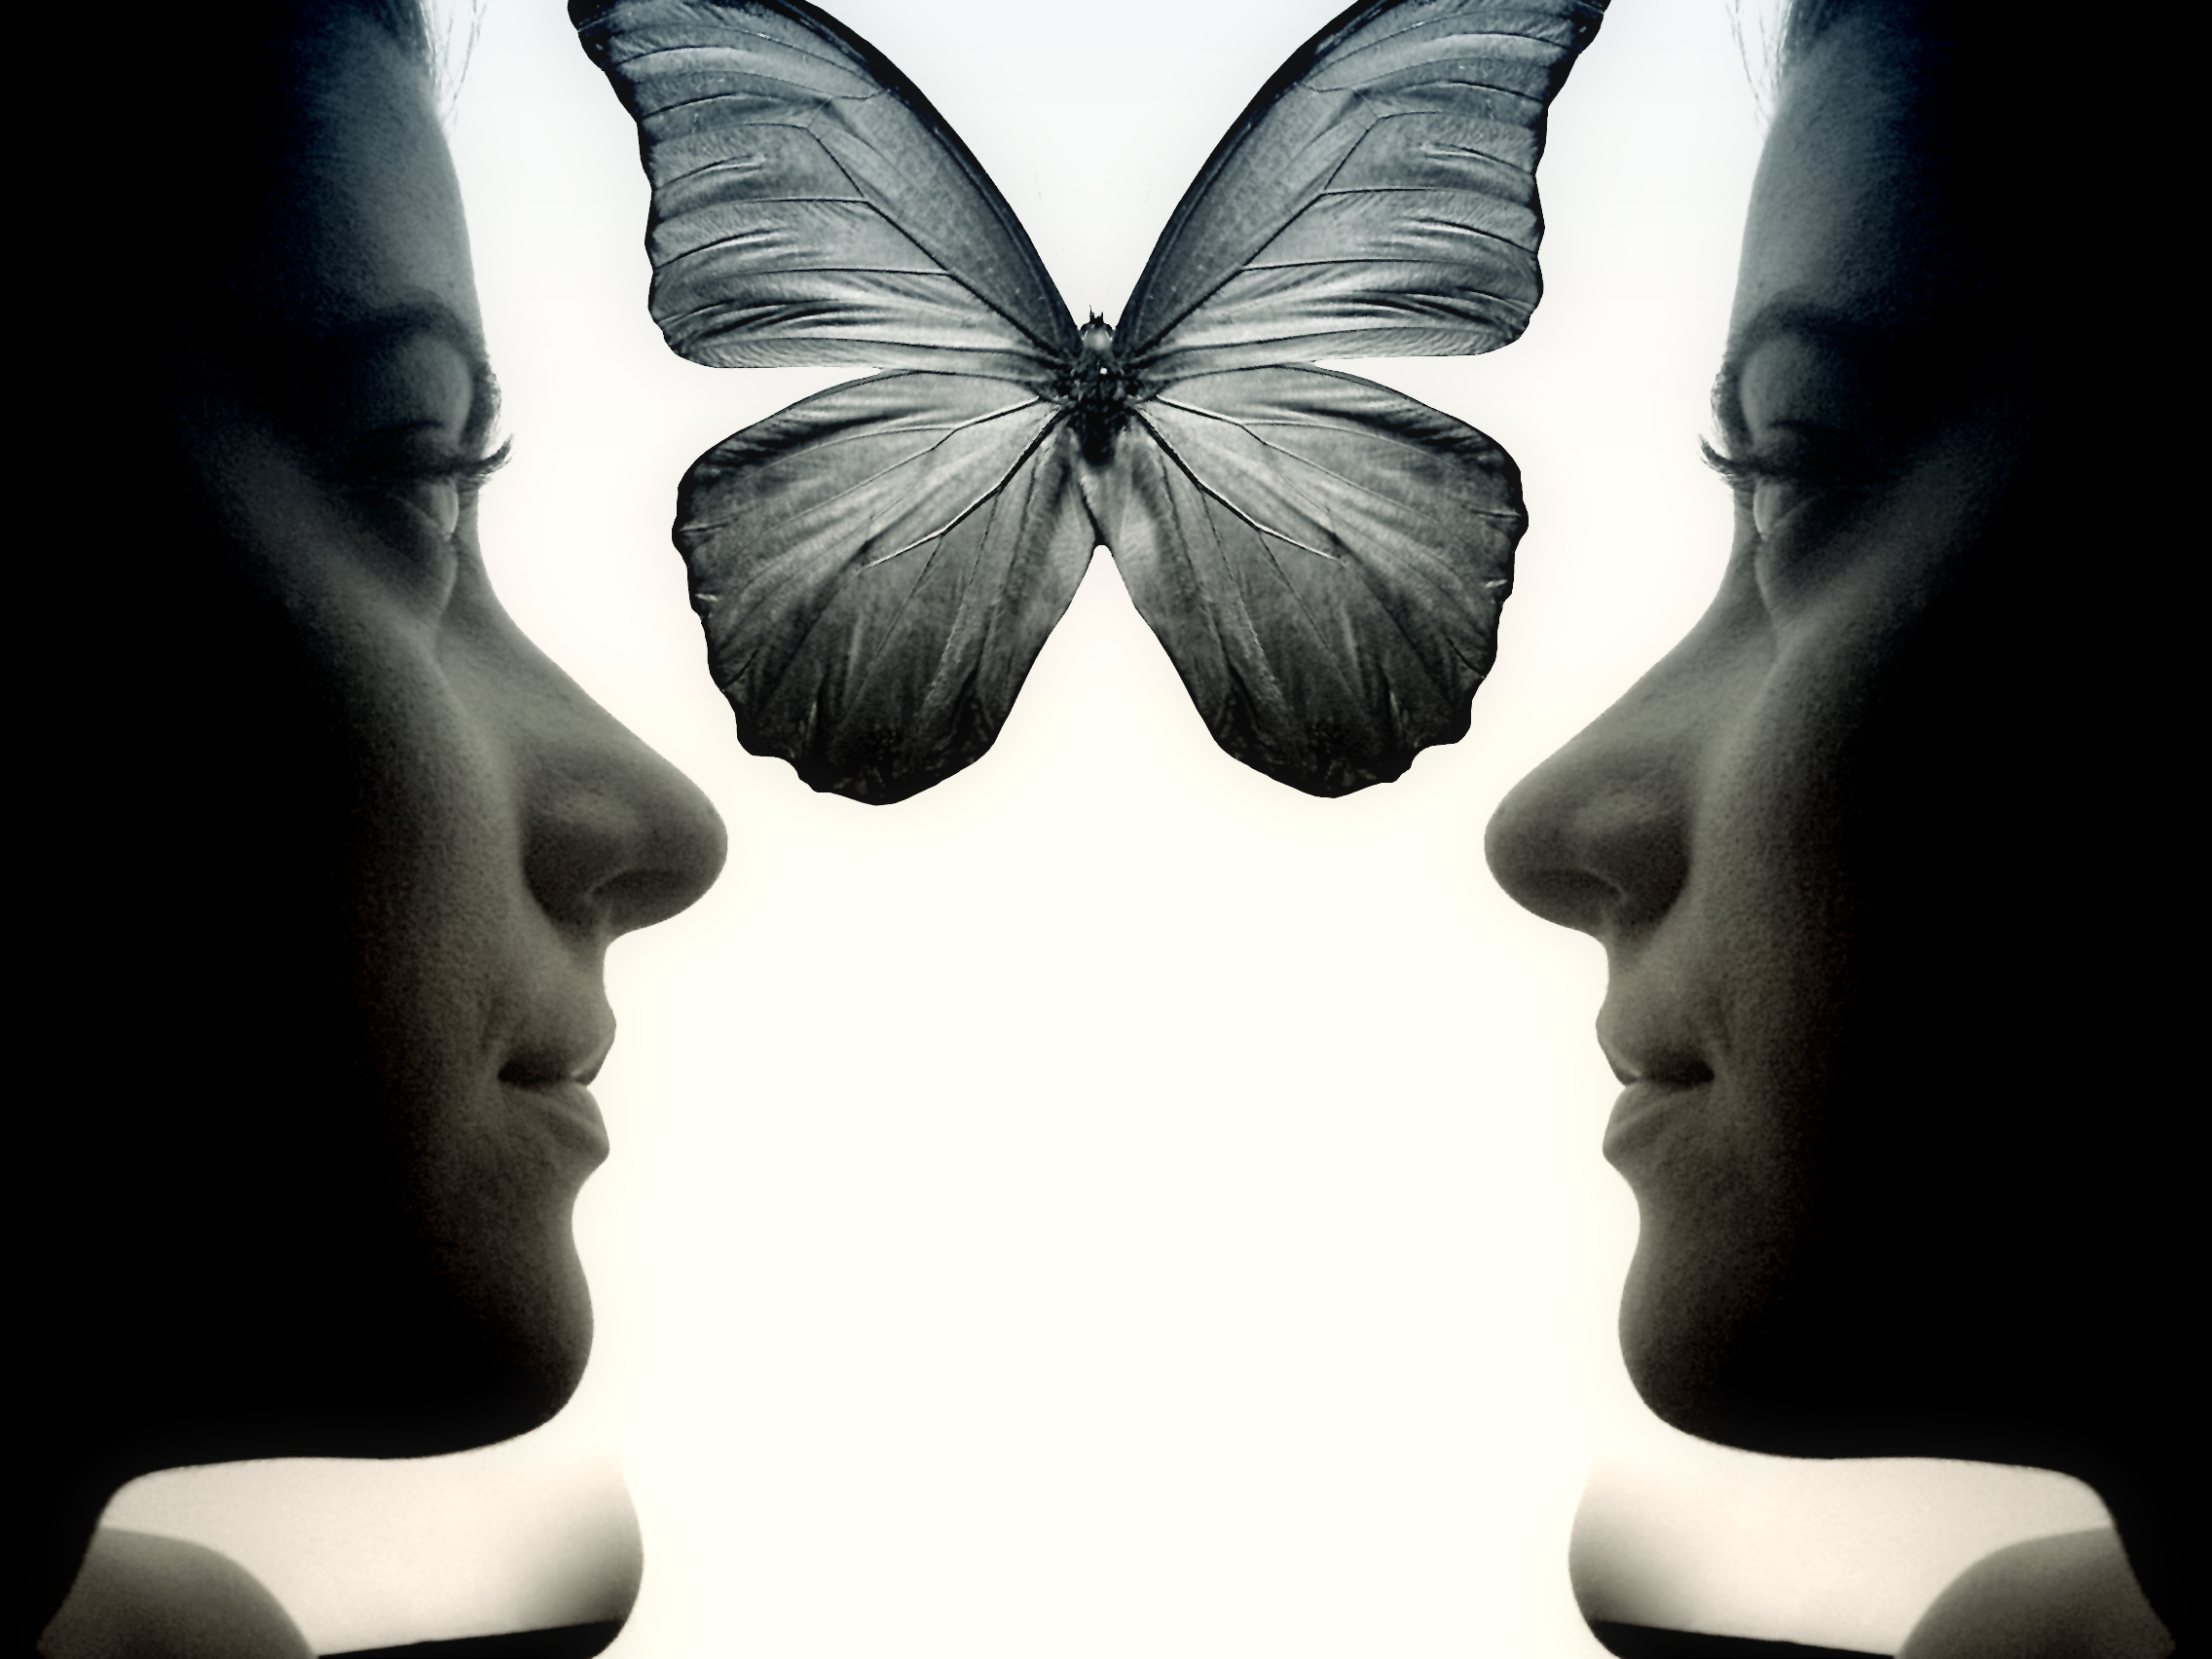 Creating thoughts and butterflies -- suggestion